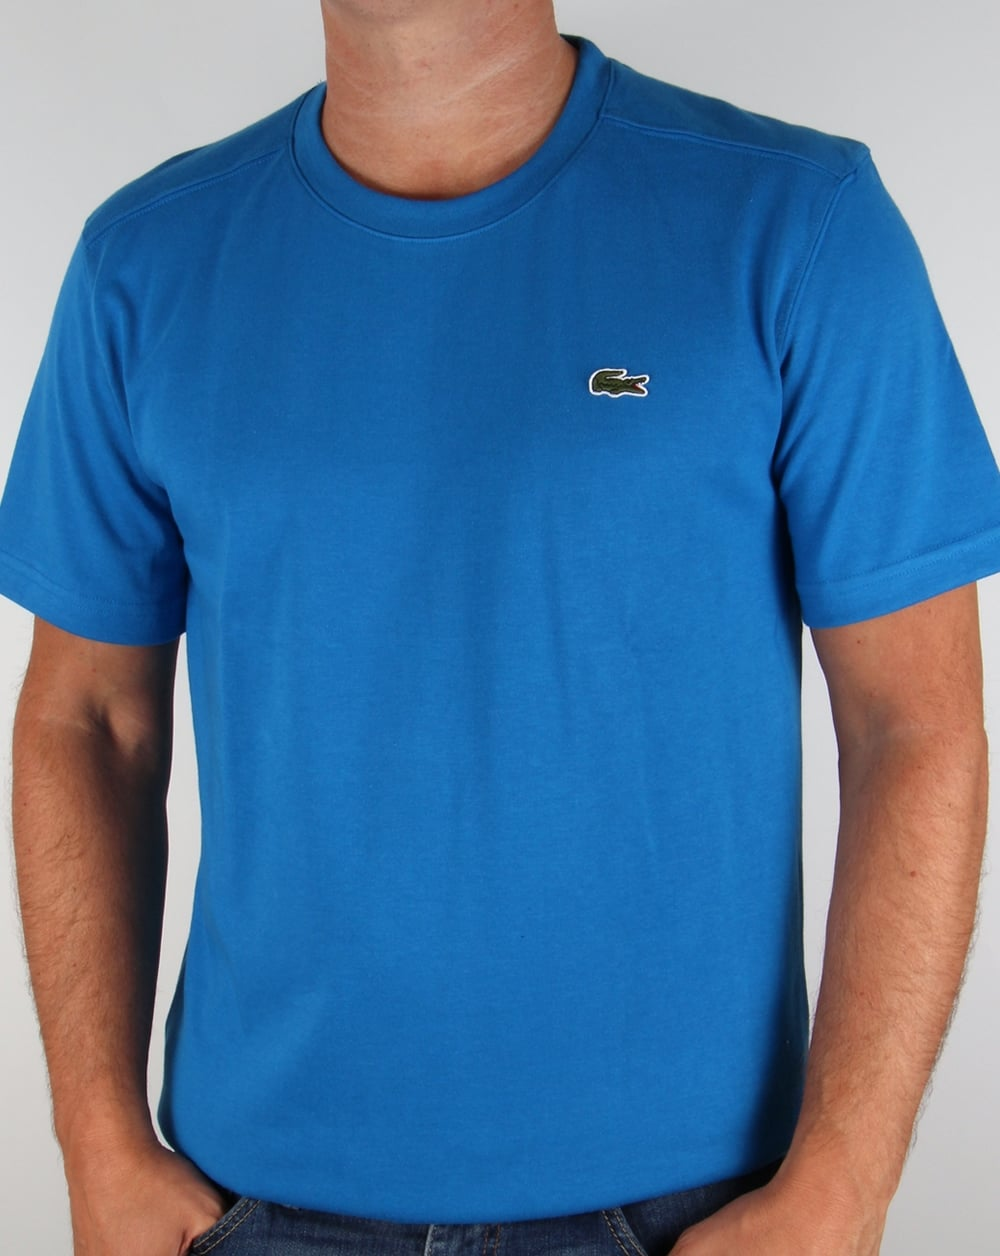 lacoste t shirt royal encre blue tee crew neck sport mens. Black Bedroom Furniture Sets. Home Design Ideas